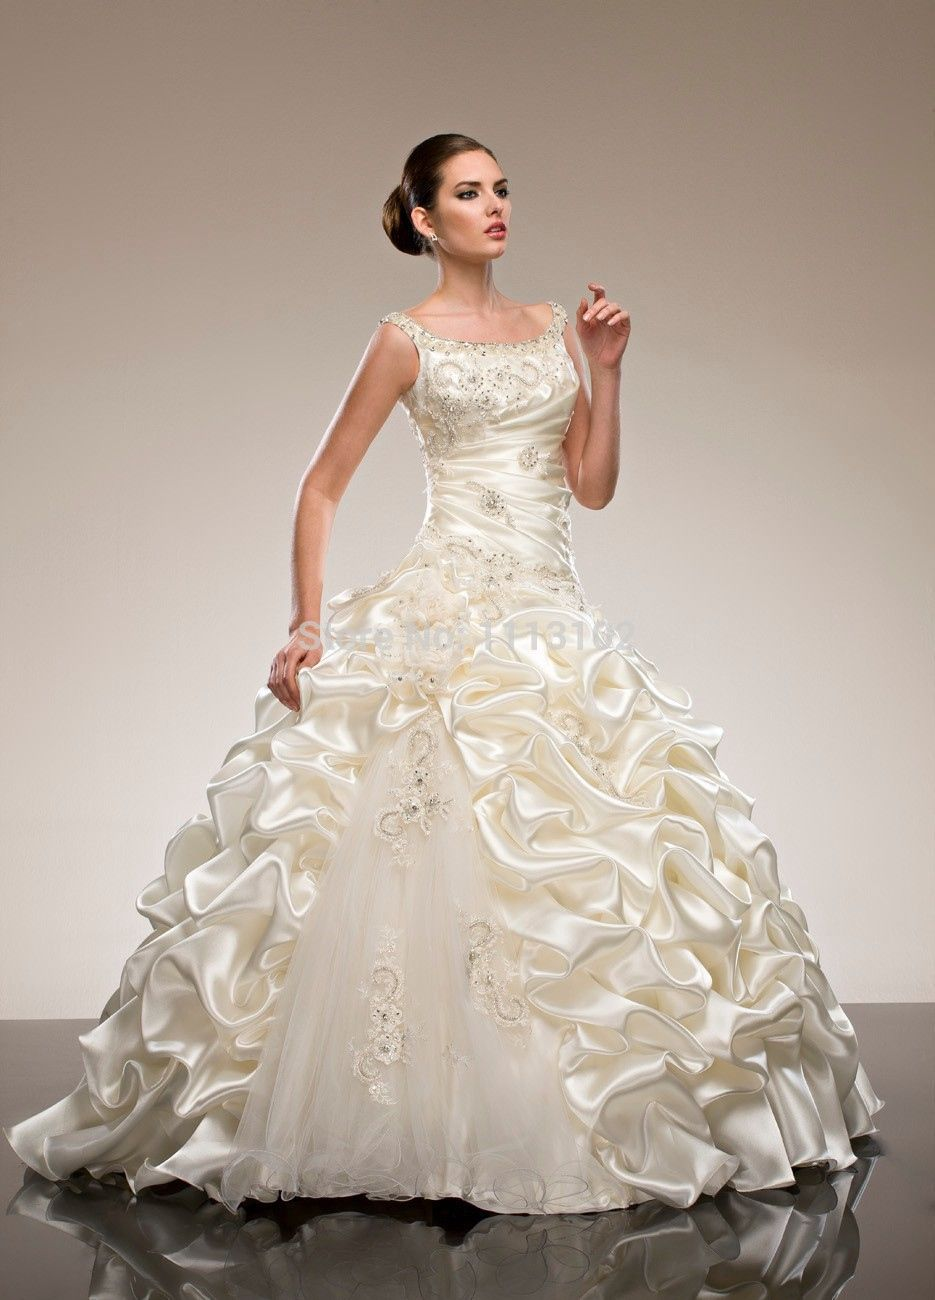 Western Wedding Dresses For Womens Women S Weddings Check More At Http